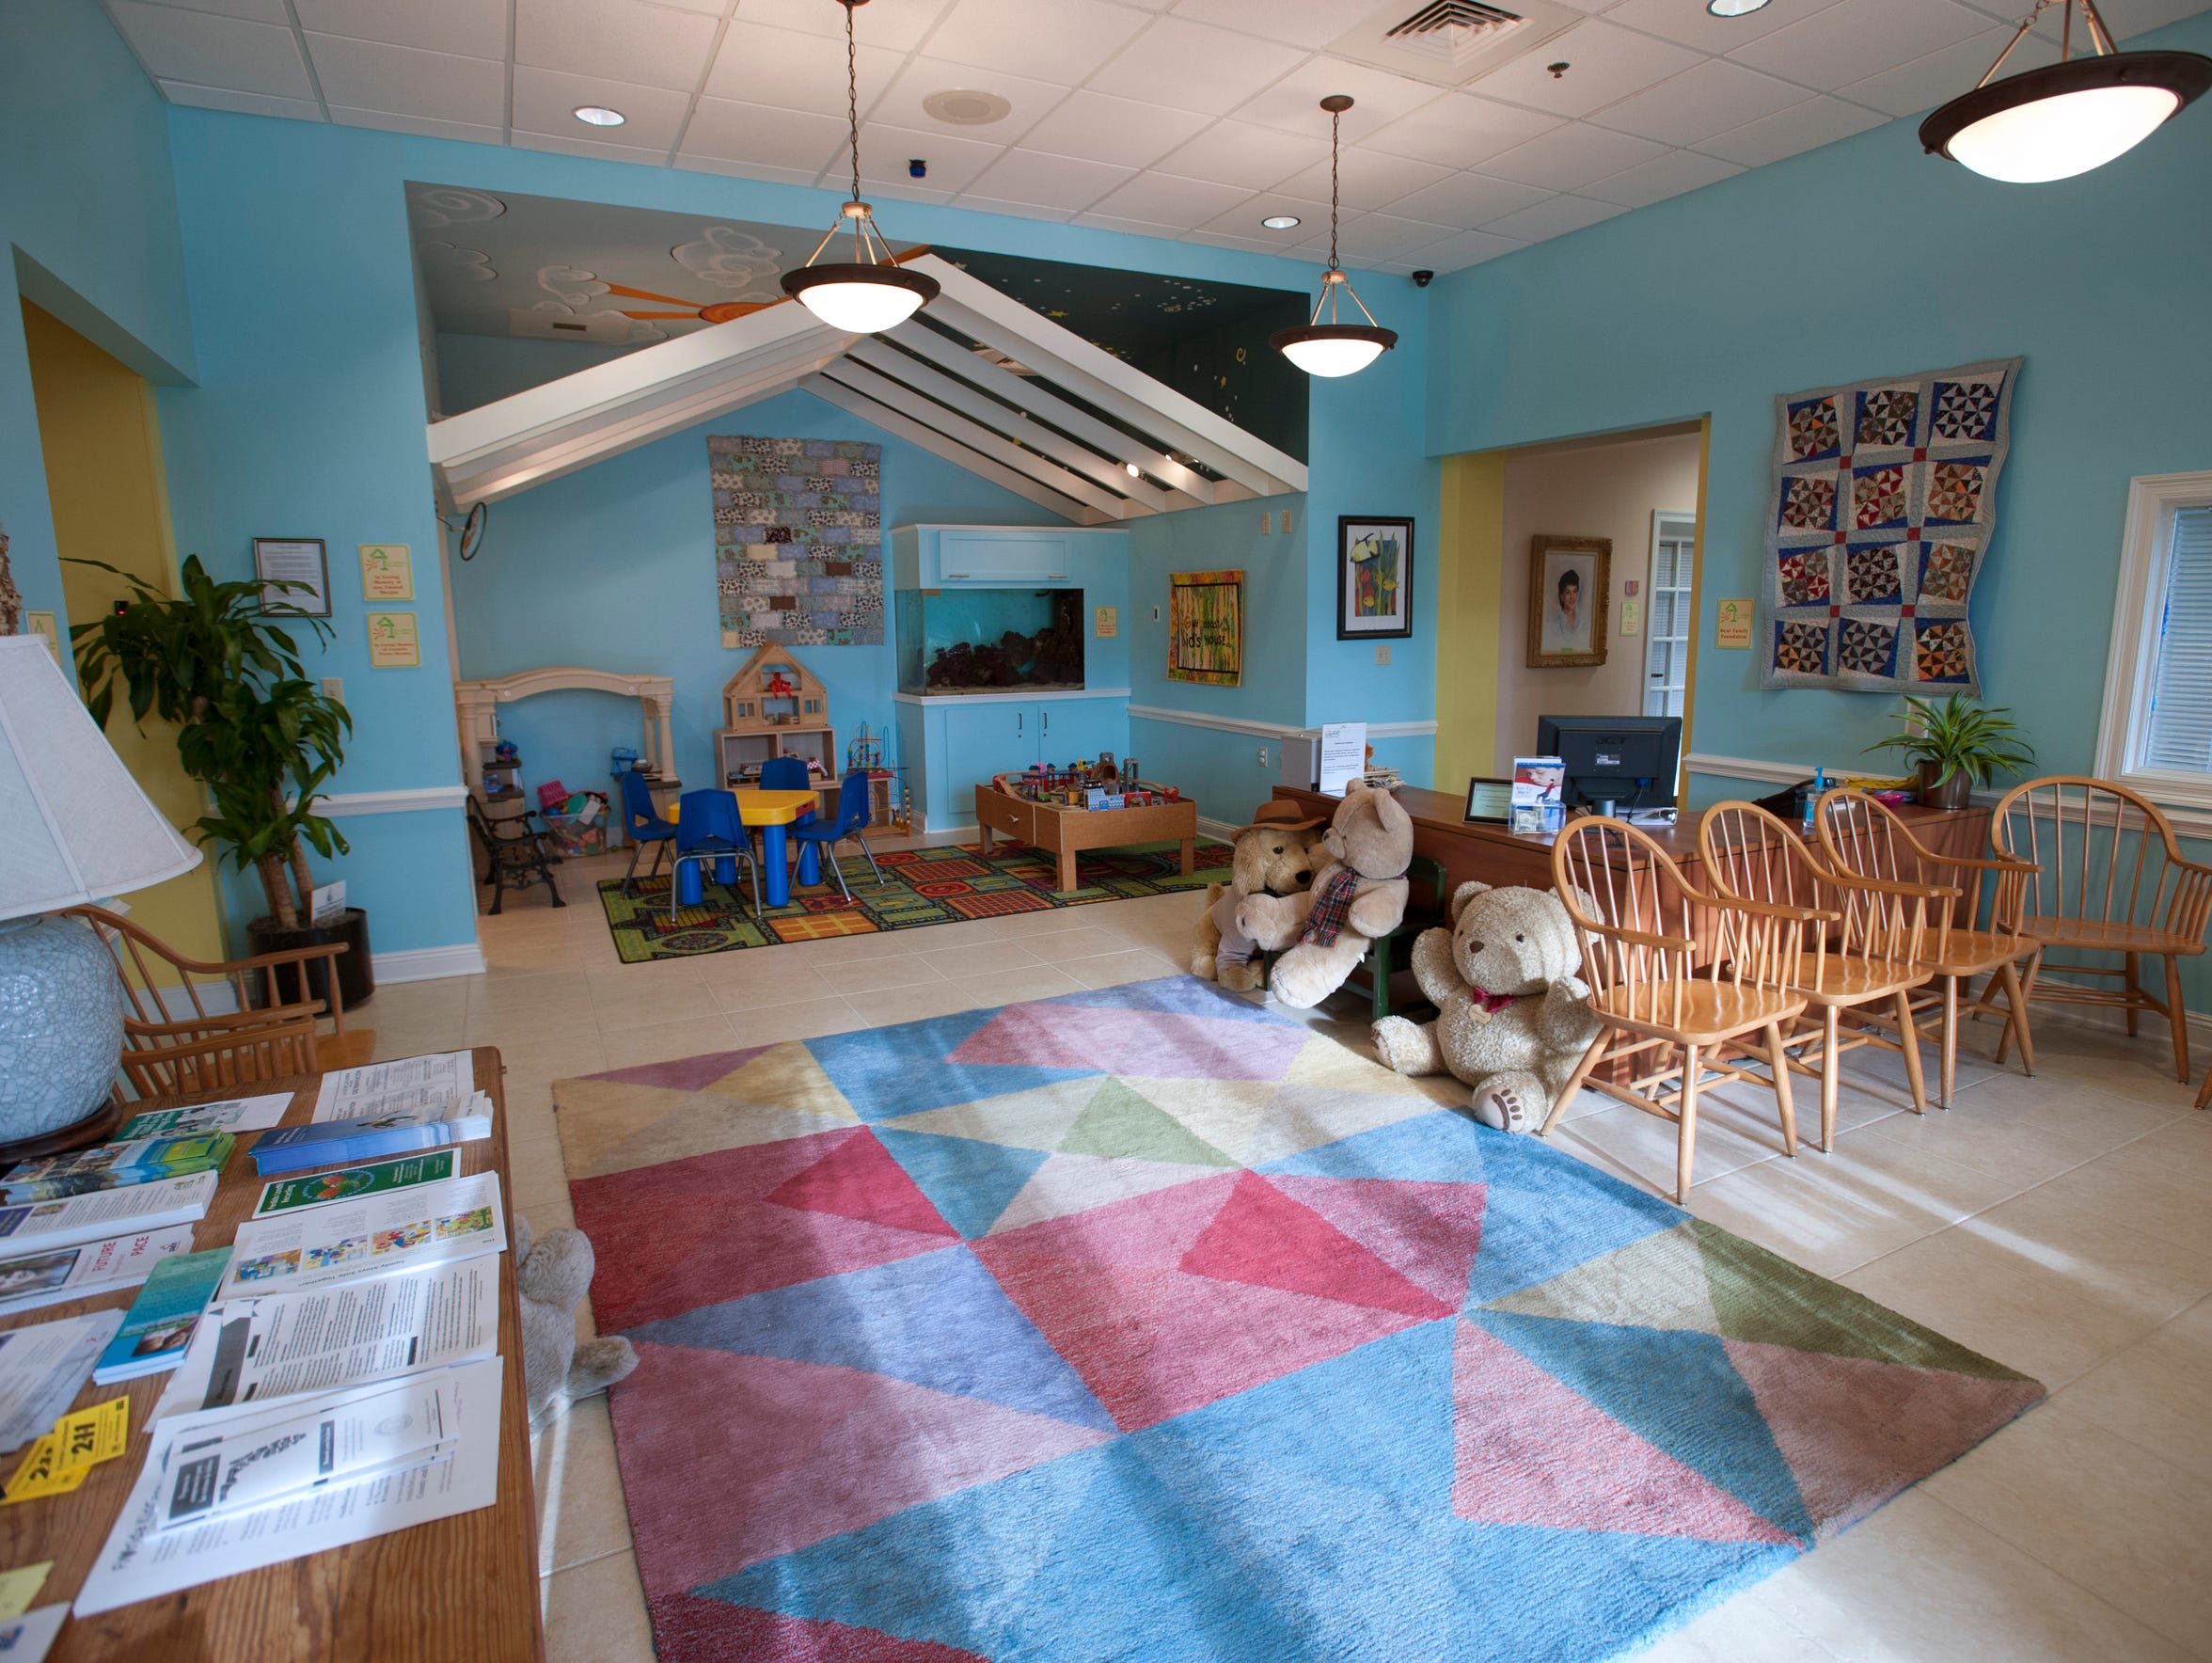 The lobby area of the Gulf Coast Kid's House is a meant